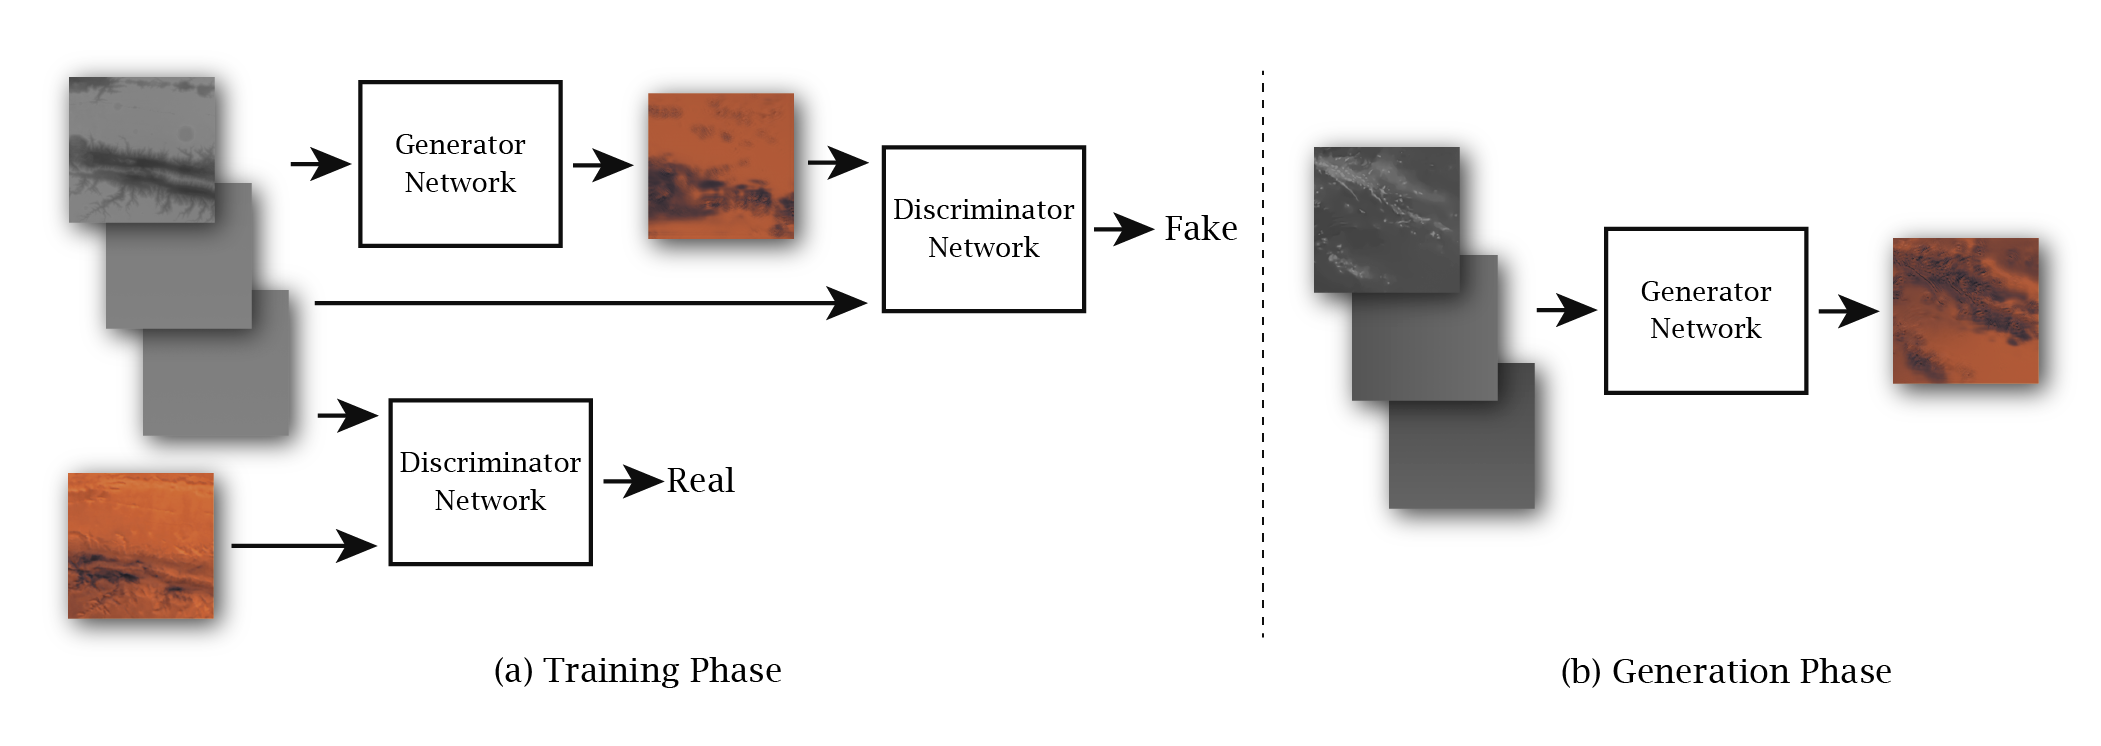 The conditional generative adversarial nets (Conditional GAN) model and data examples used in the project. Mars data was used in the training phase, while Earth data was used in the generation phase. The generator was trained to produce color images according to topographical data in hopes of convincing the discriminator which was trained to be knowledgeable about the authenticity of Mars imagery. The two networks were trained in turn so that they can compete and grow together. The datasets consist of global data of Mars and Earth sliced into thousands of tiles. To facilitate training and generation, longitude and latitude data were also used.